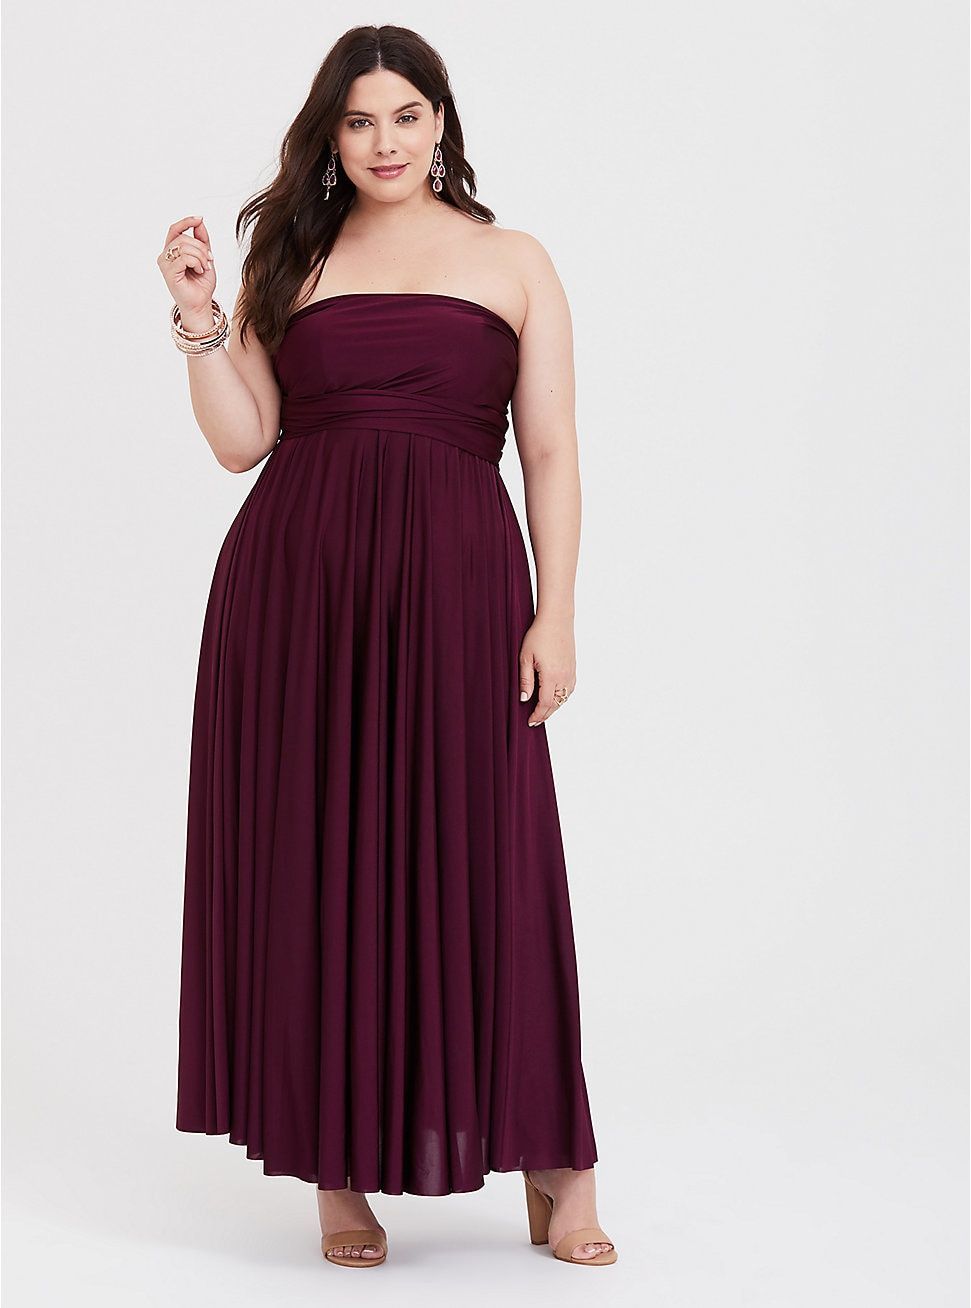 Special Occasion Burgundy Shiny Knit Convertible Maxi Dress ...